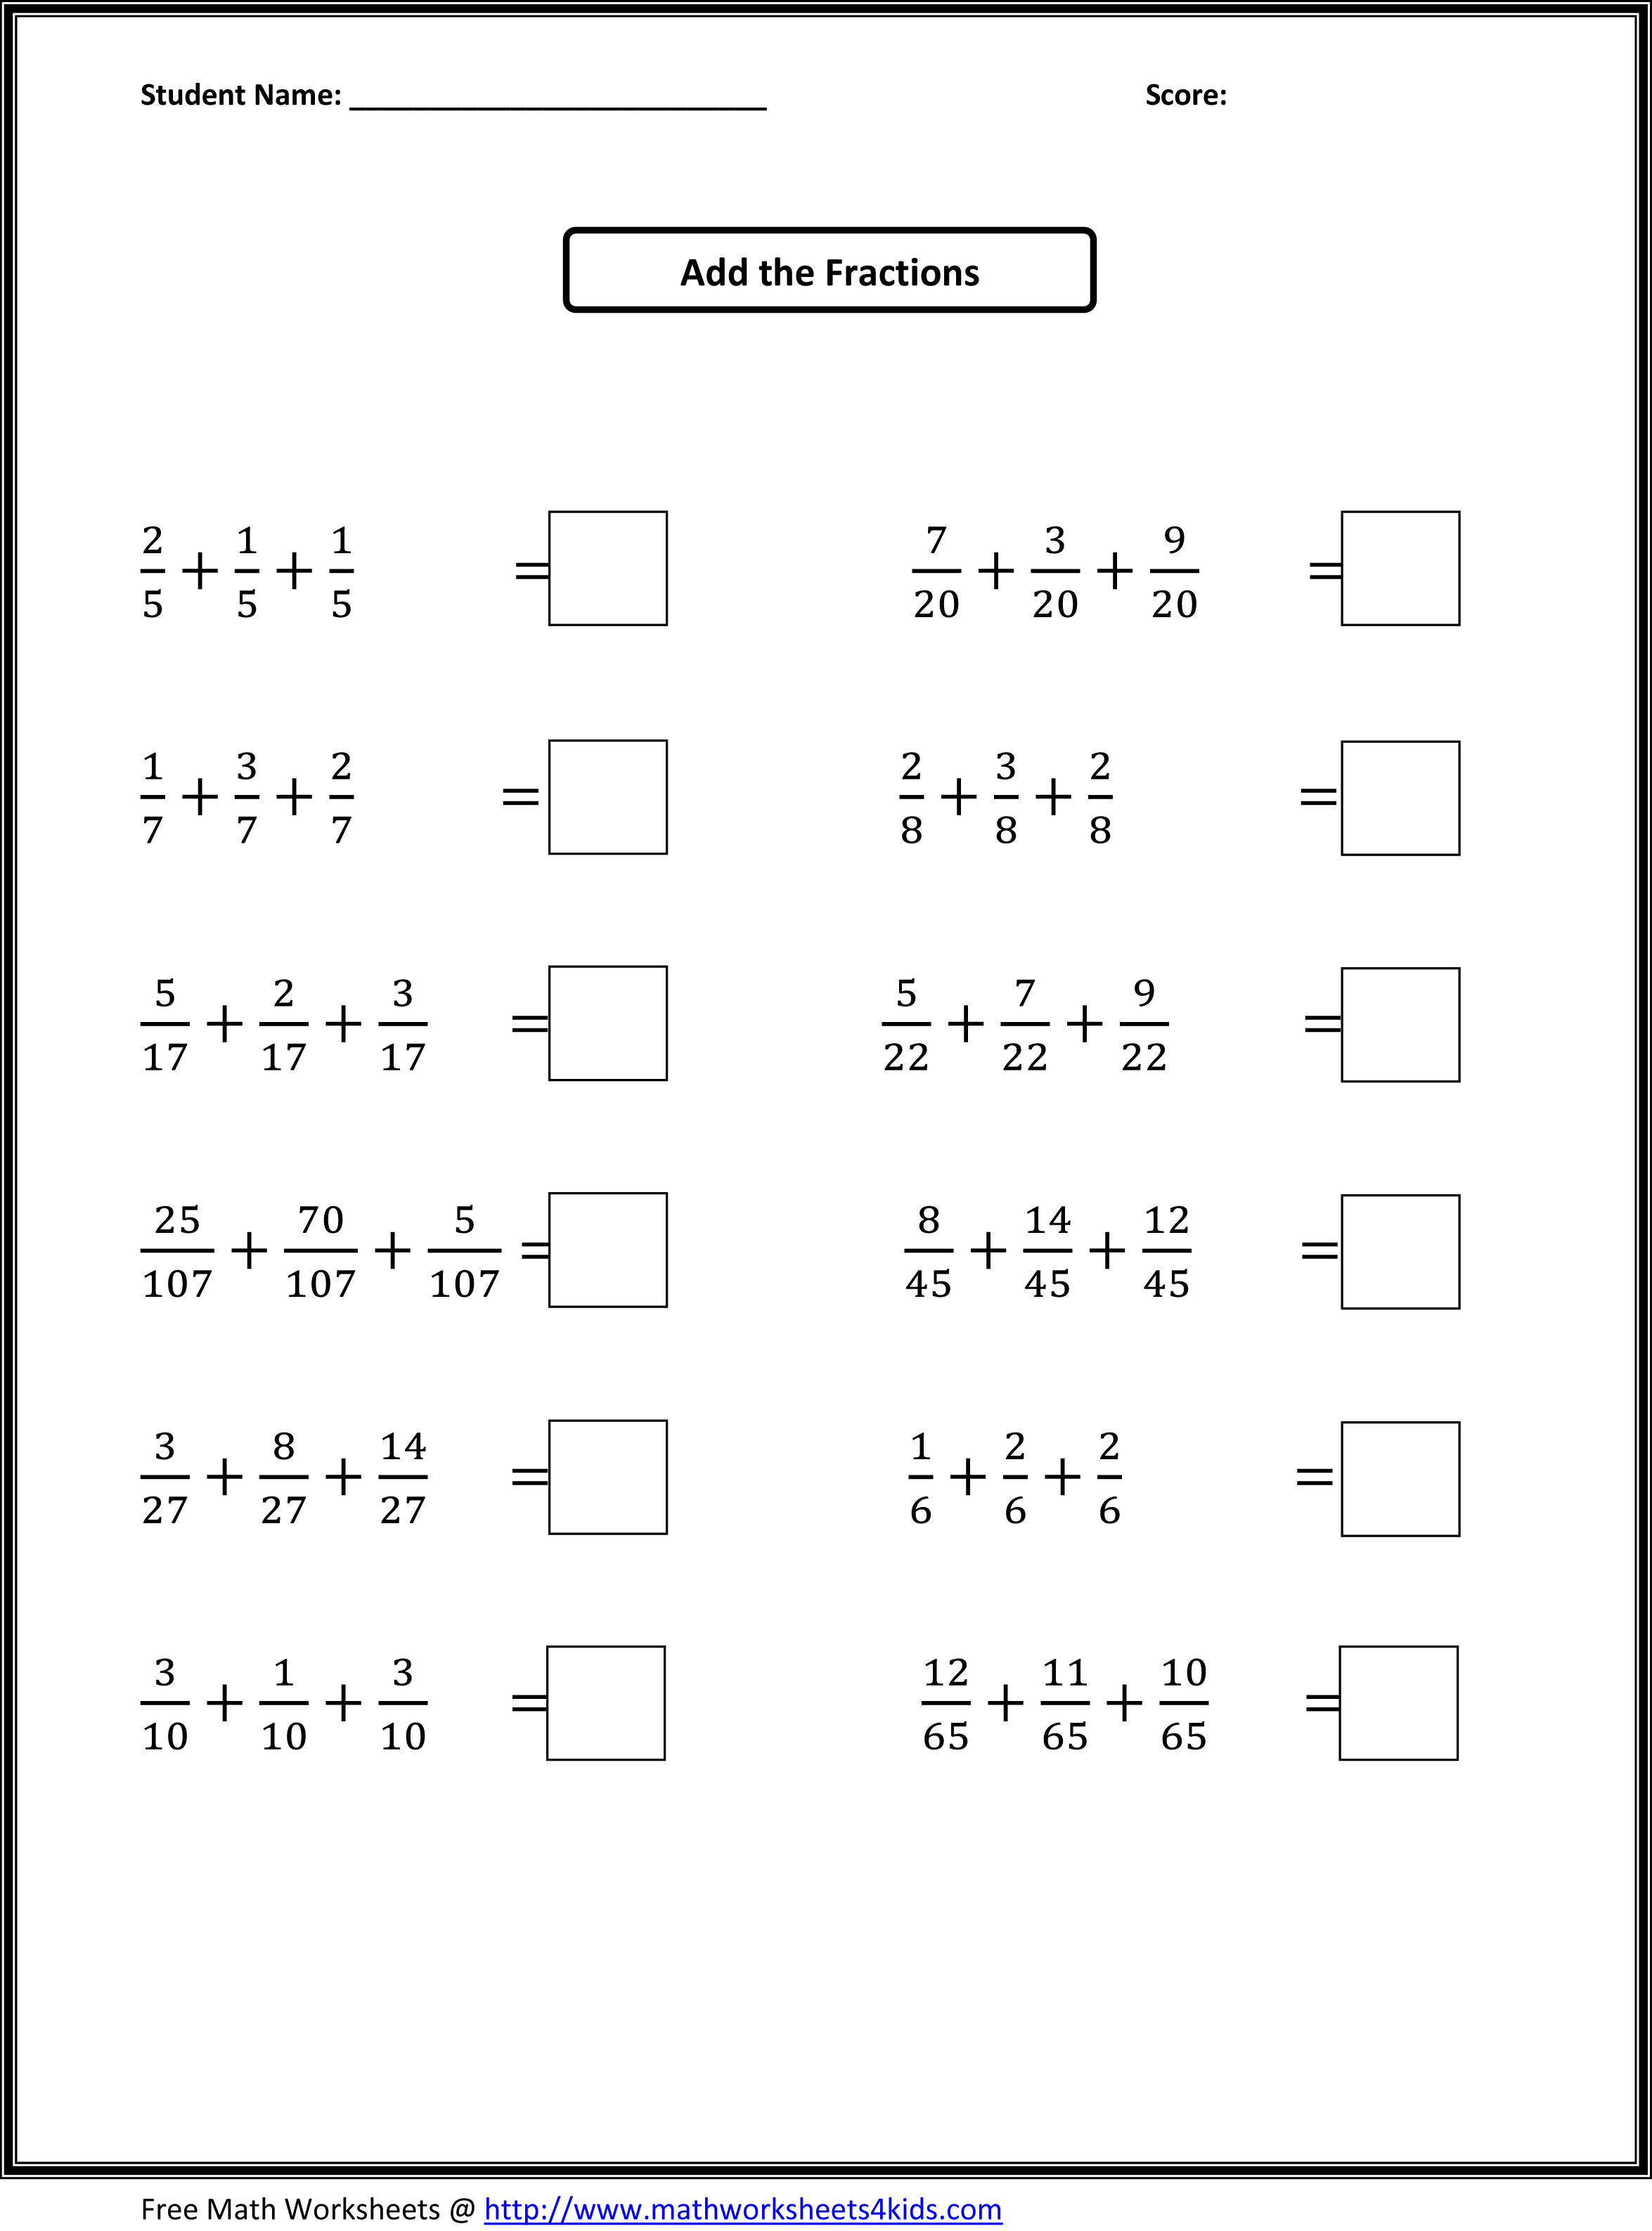 math worksheet : math printable worksheets 4th grade  khayav : Printable Fourth Grade Math Worksheets